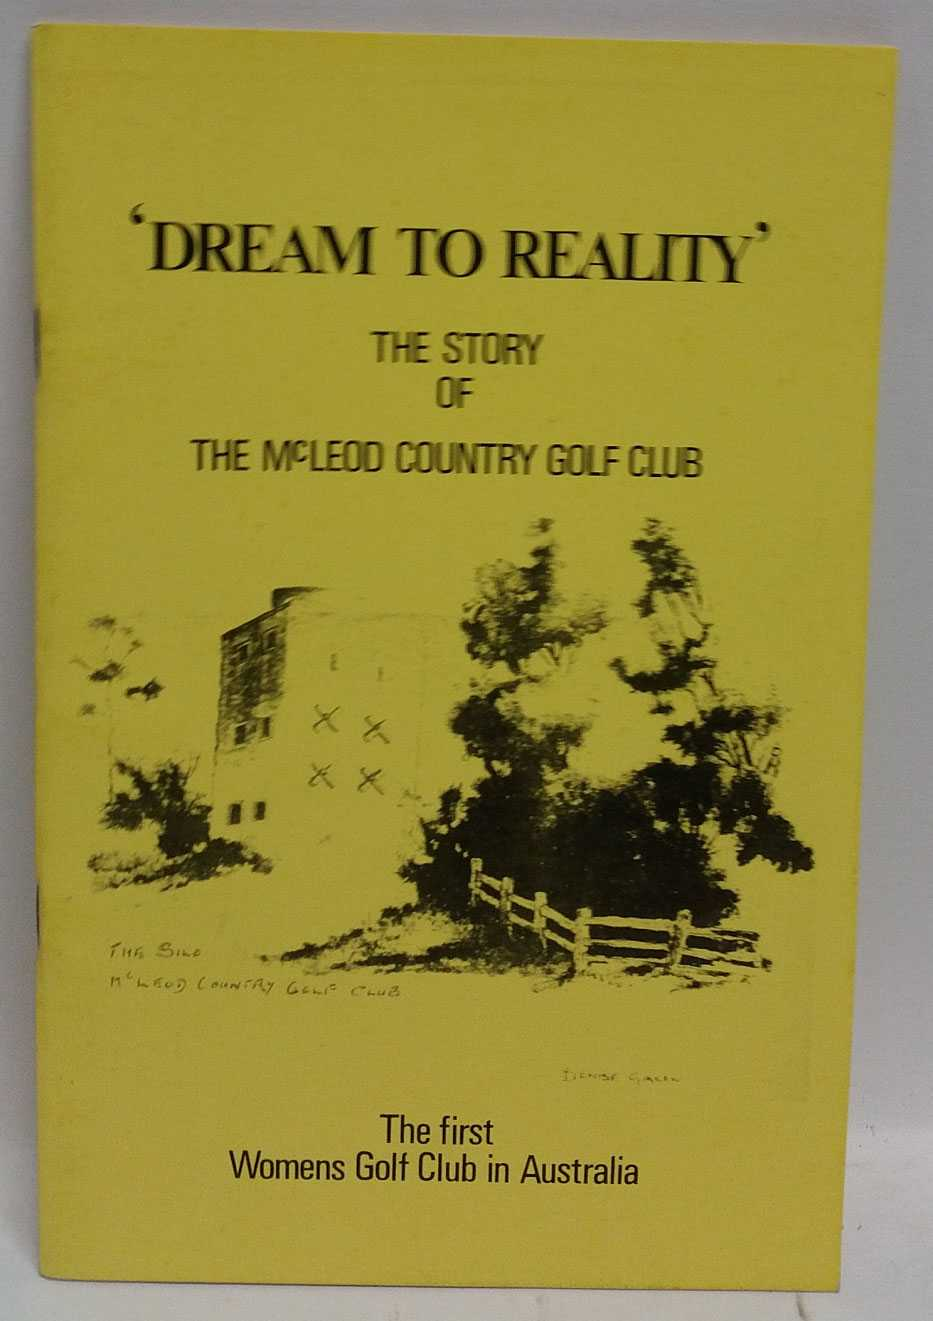 'Dream To Reality' The Story of The McLeod Country Golf Club: The first Womens Golf Club in Australia, Ethel Gee